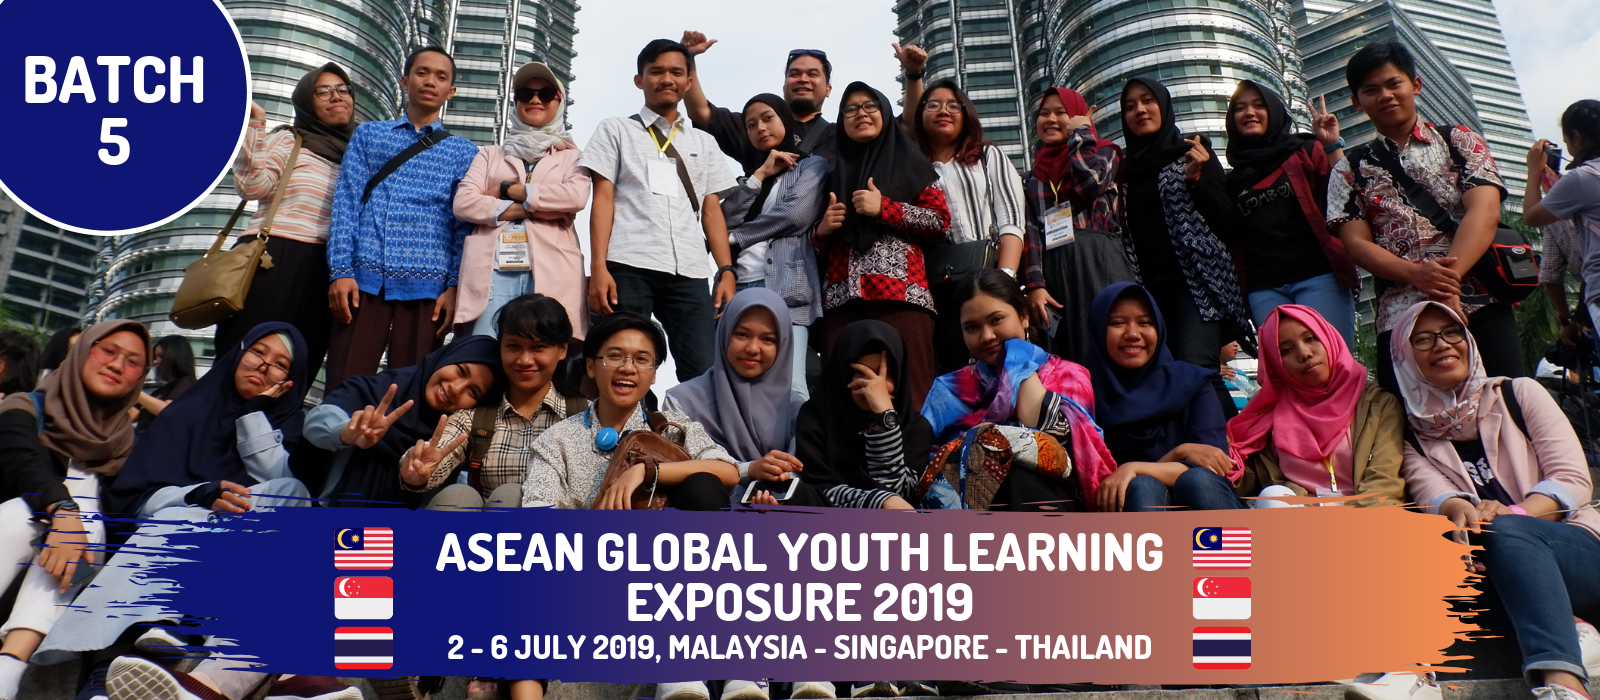 ASEAN Global Youth Learning Exposure 2019 (For Indonesia) in